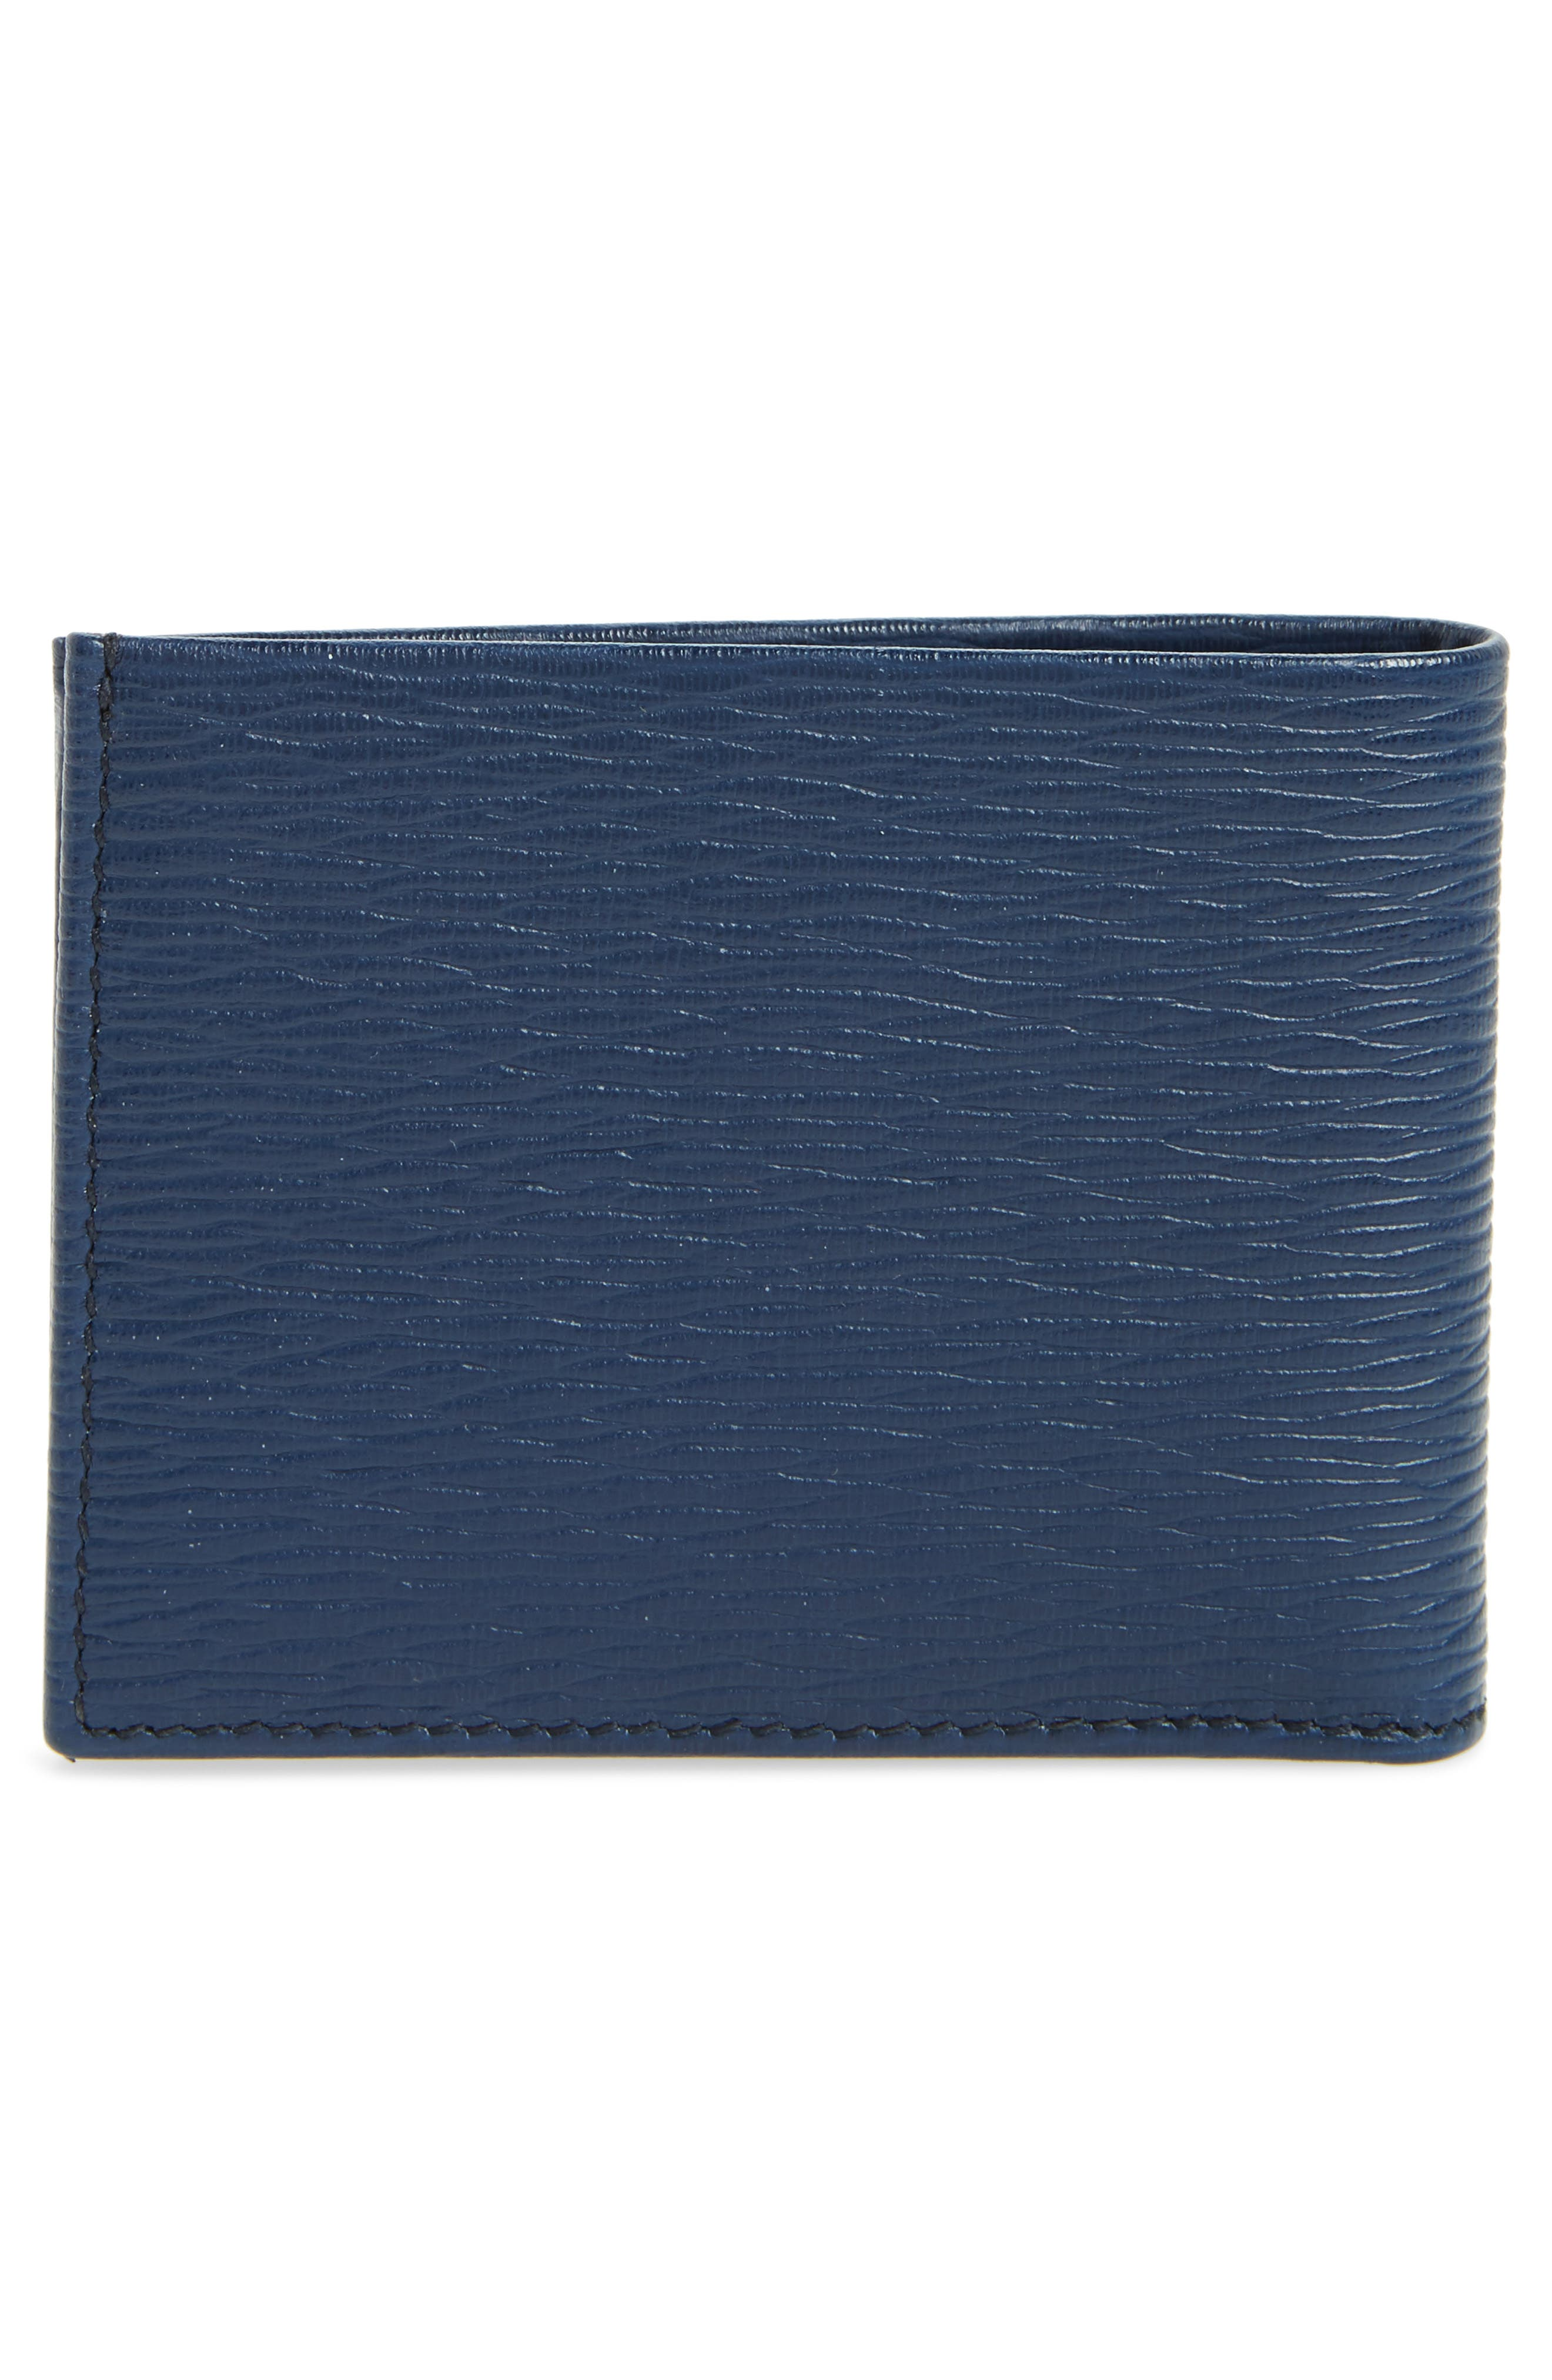 Revival Bifold Leather Wallet,                             Alternate thumbnail 3, color,                             BLUE